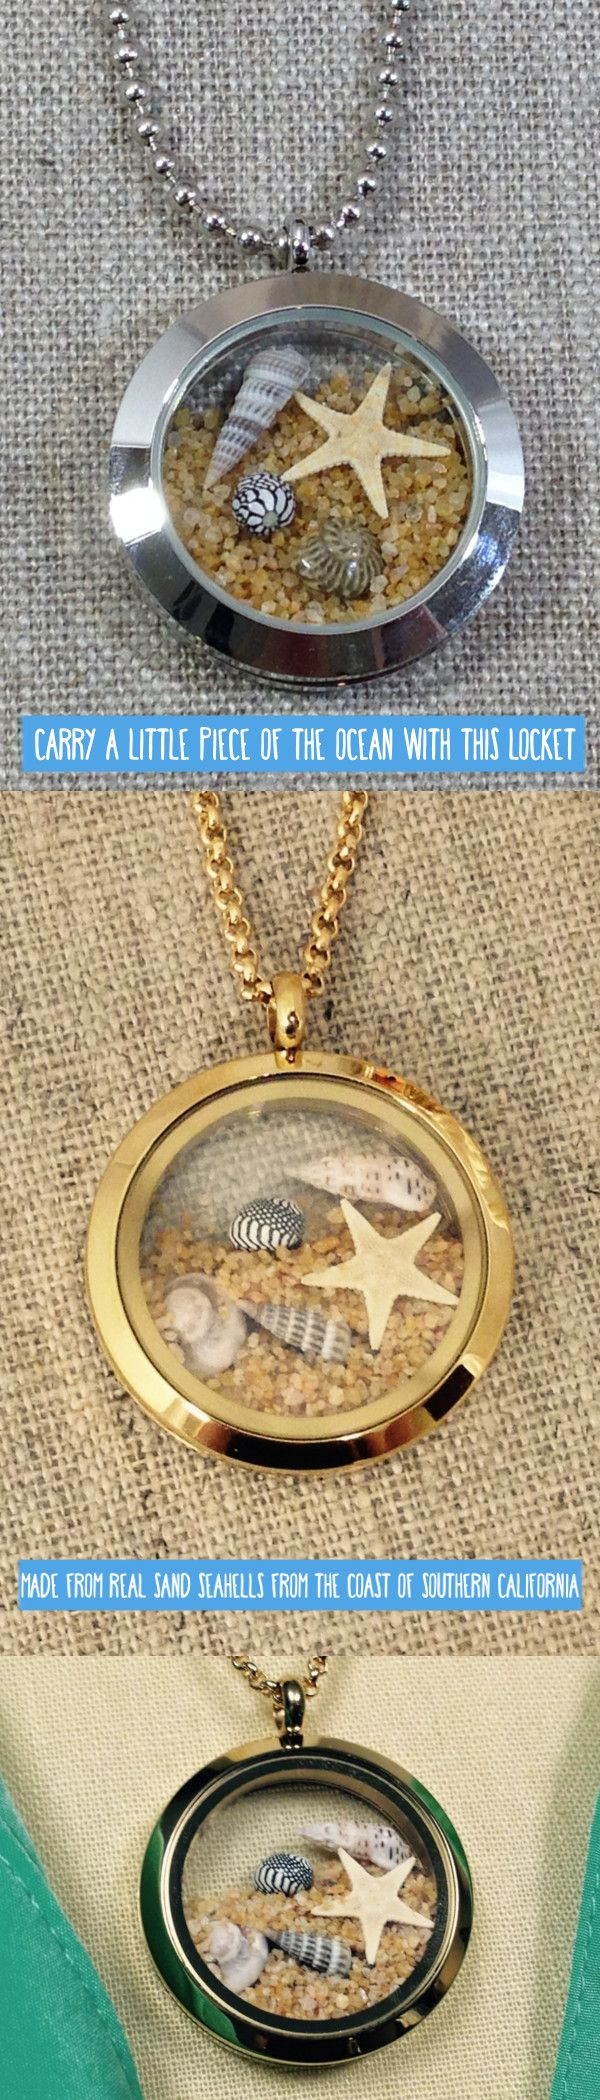 Carry a little piece of the ocean with you everyday with our beautiful floating locket. Each locket is filled with real sand and seashells from the coast of Southern California.